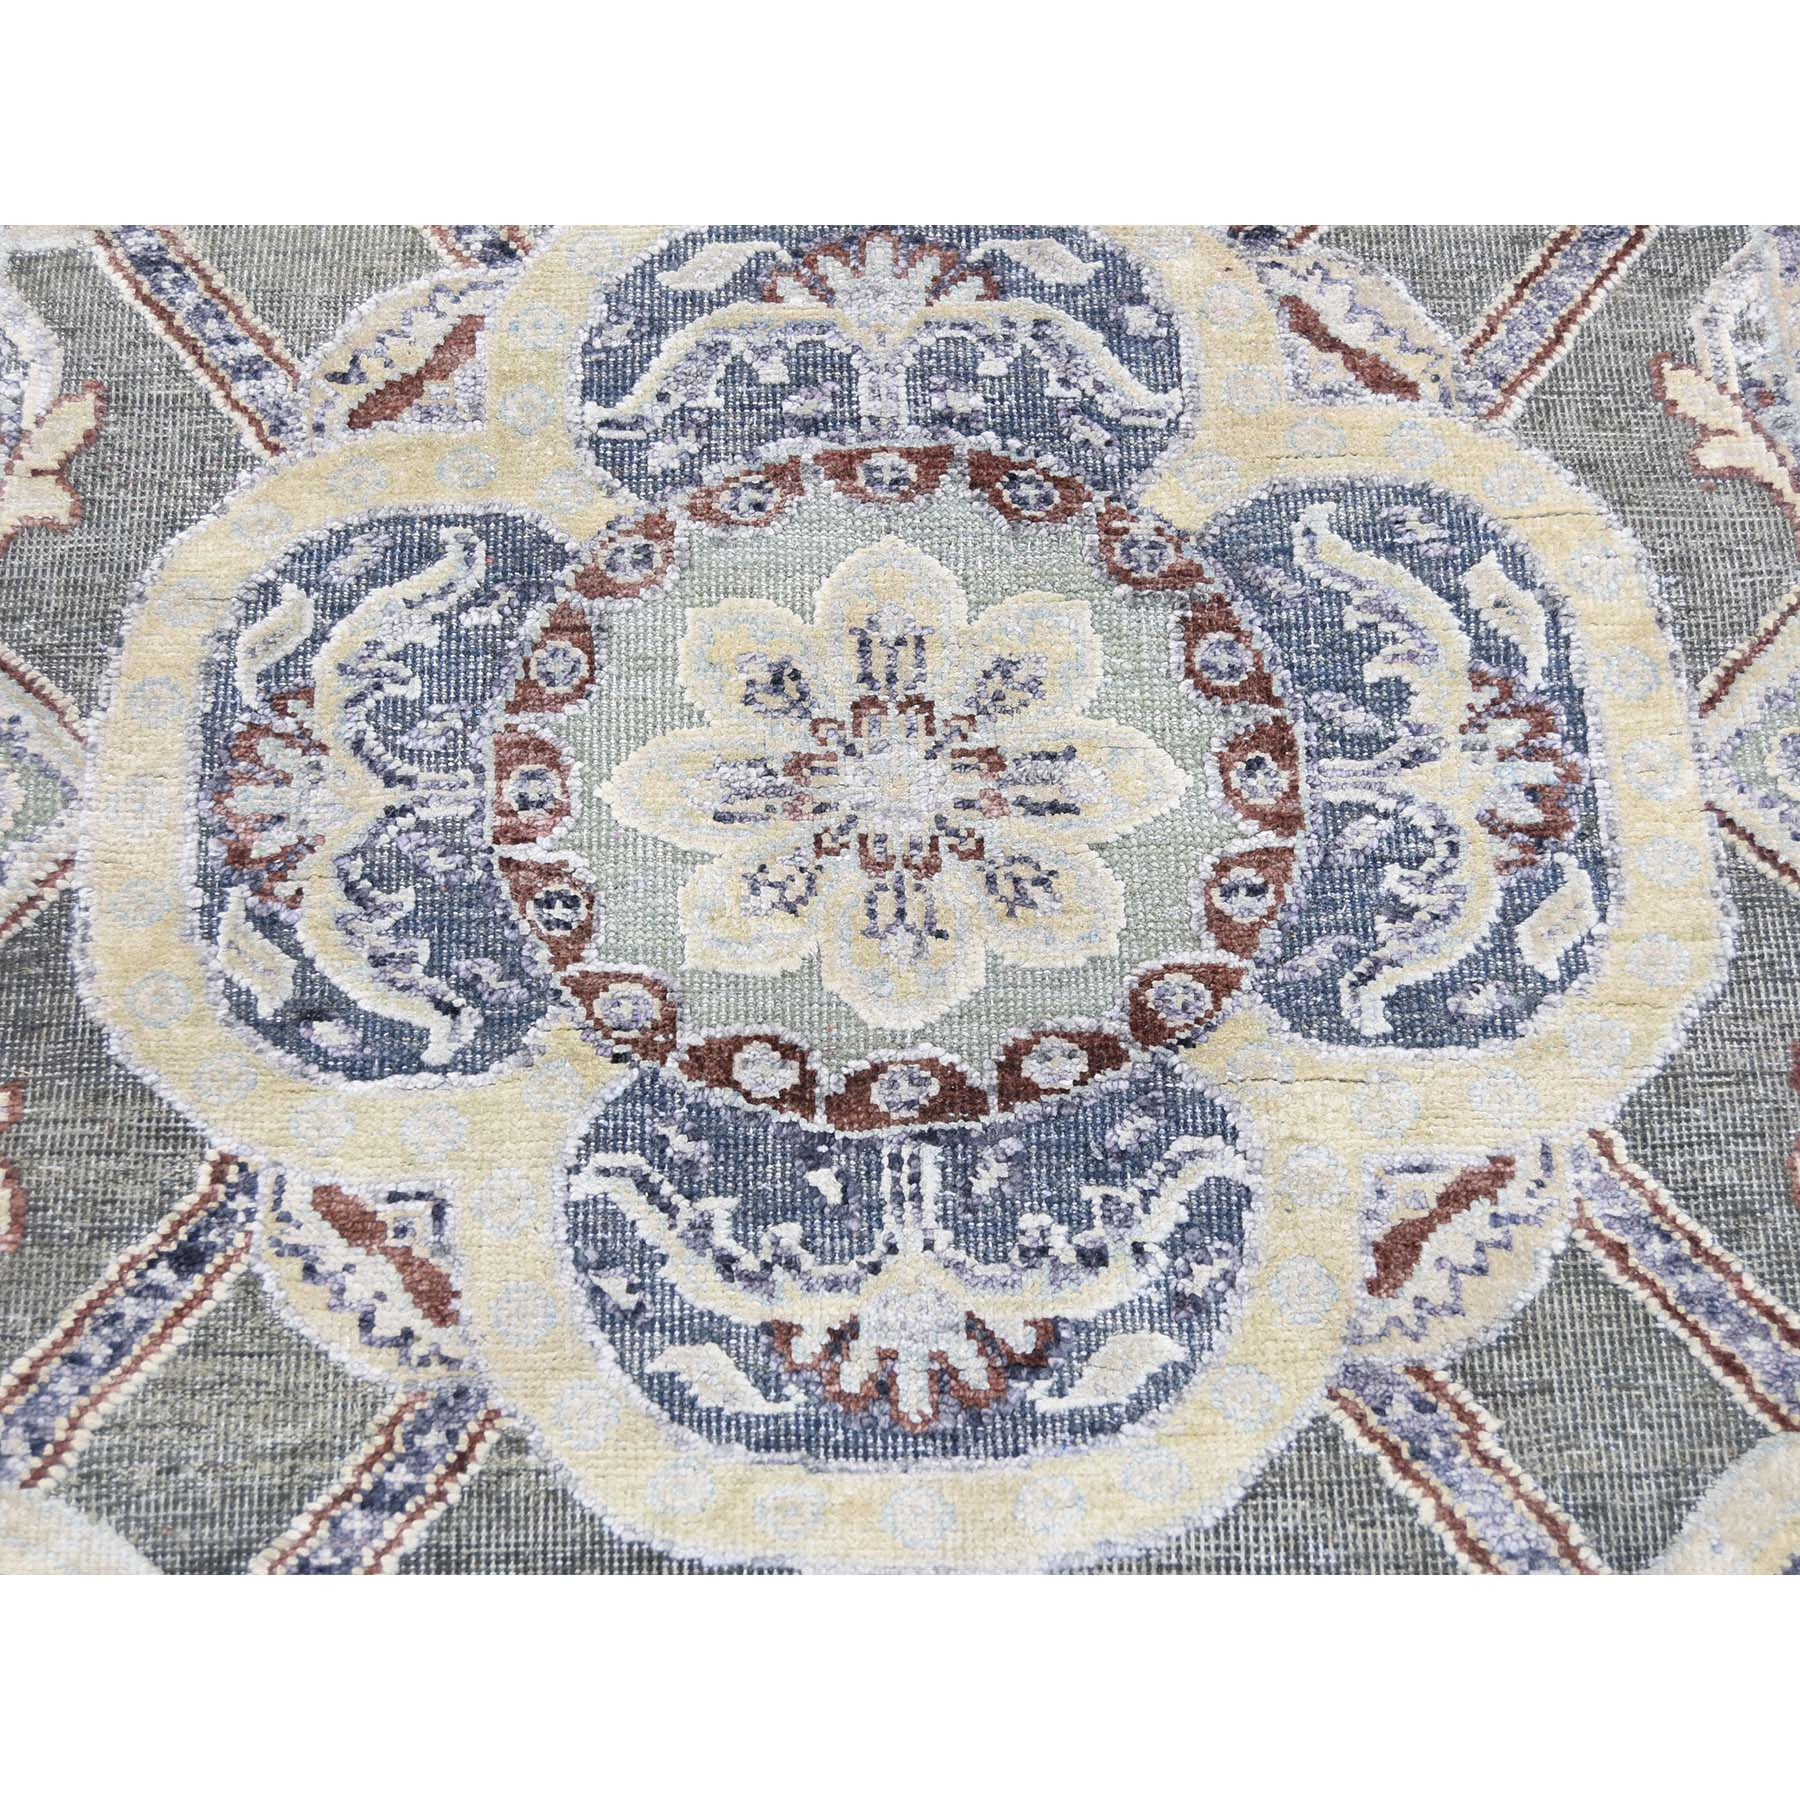 2-6 x12- Silk with Oxidized Wool Rosette Design Hand-Knotted Oriental Rug